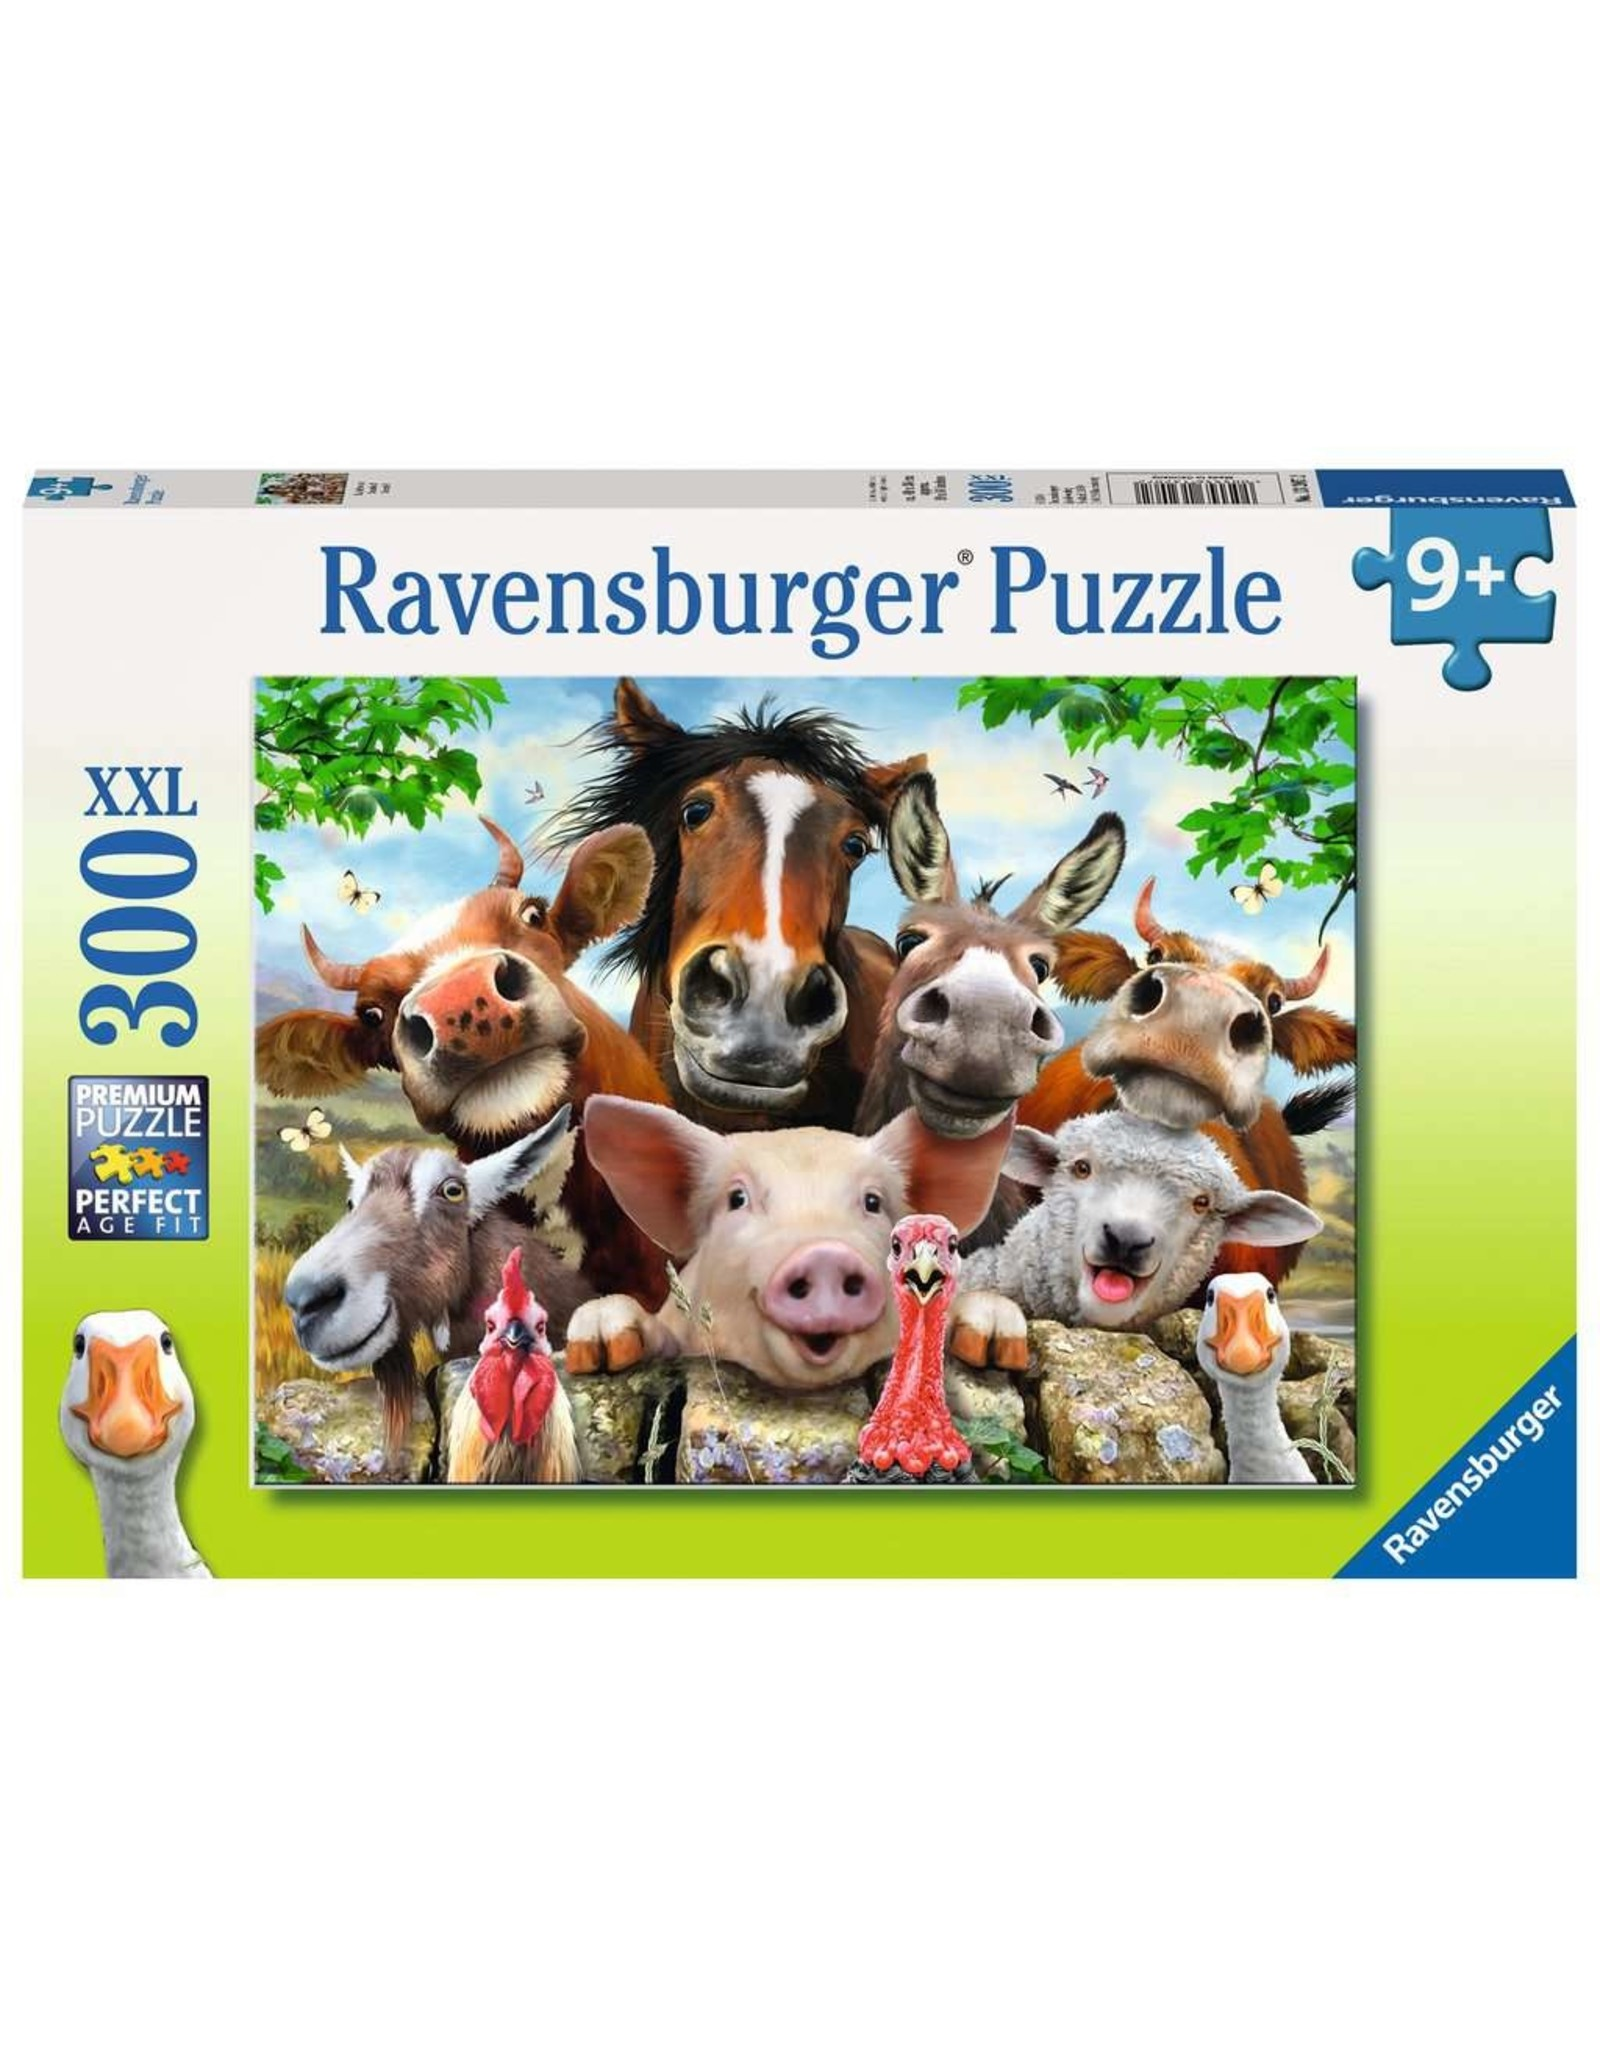 Ravensburger Say Cheese! 300pcs